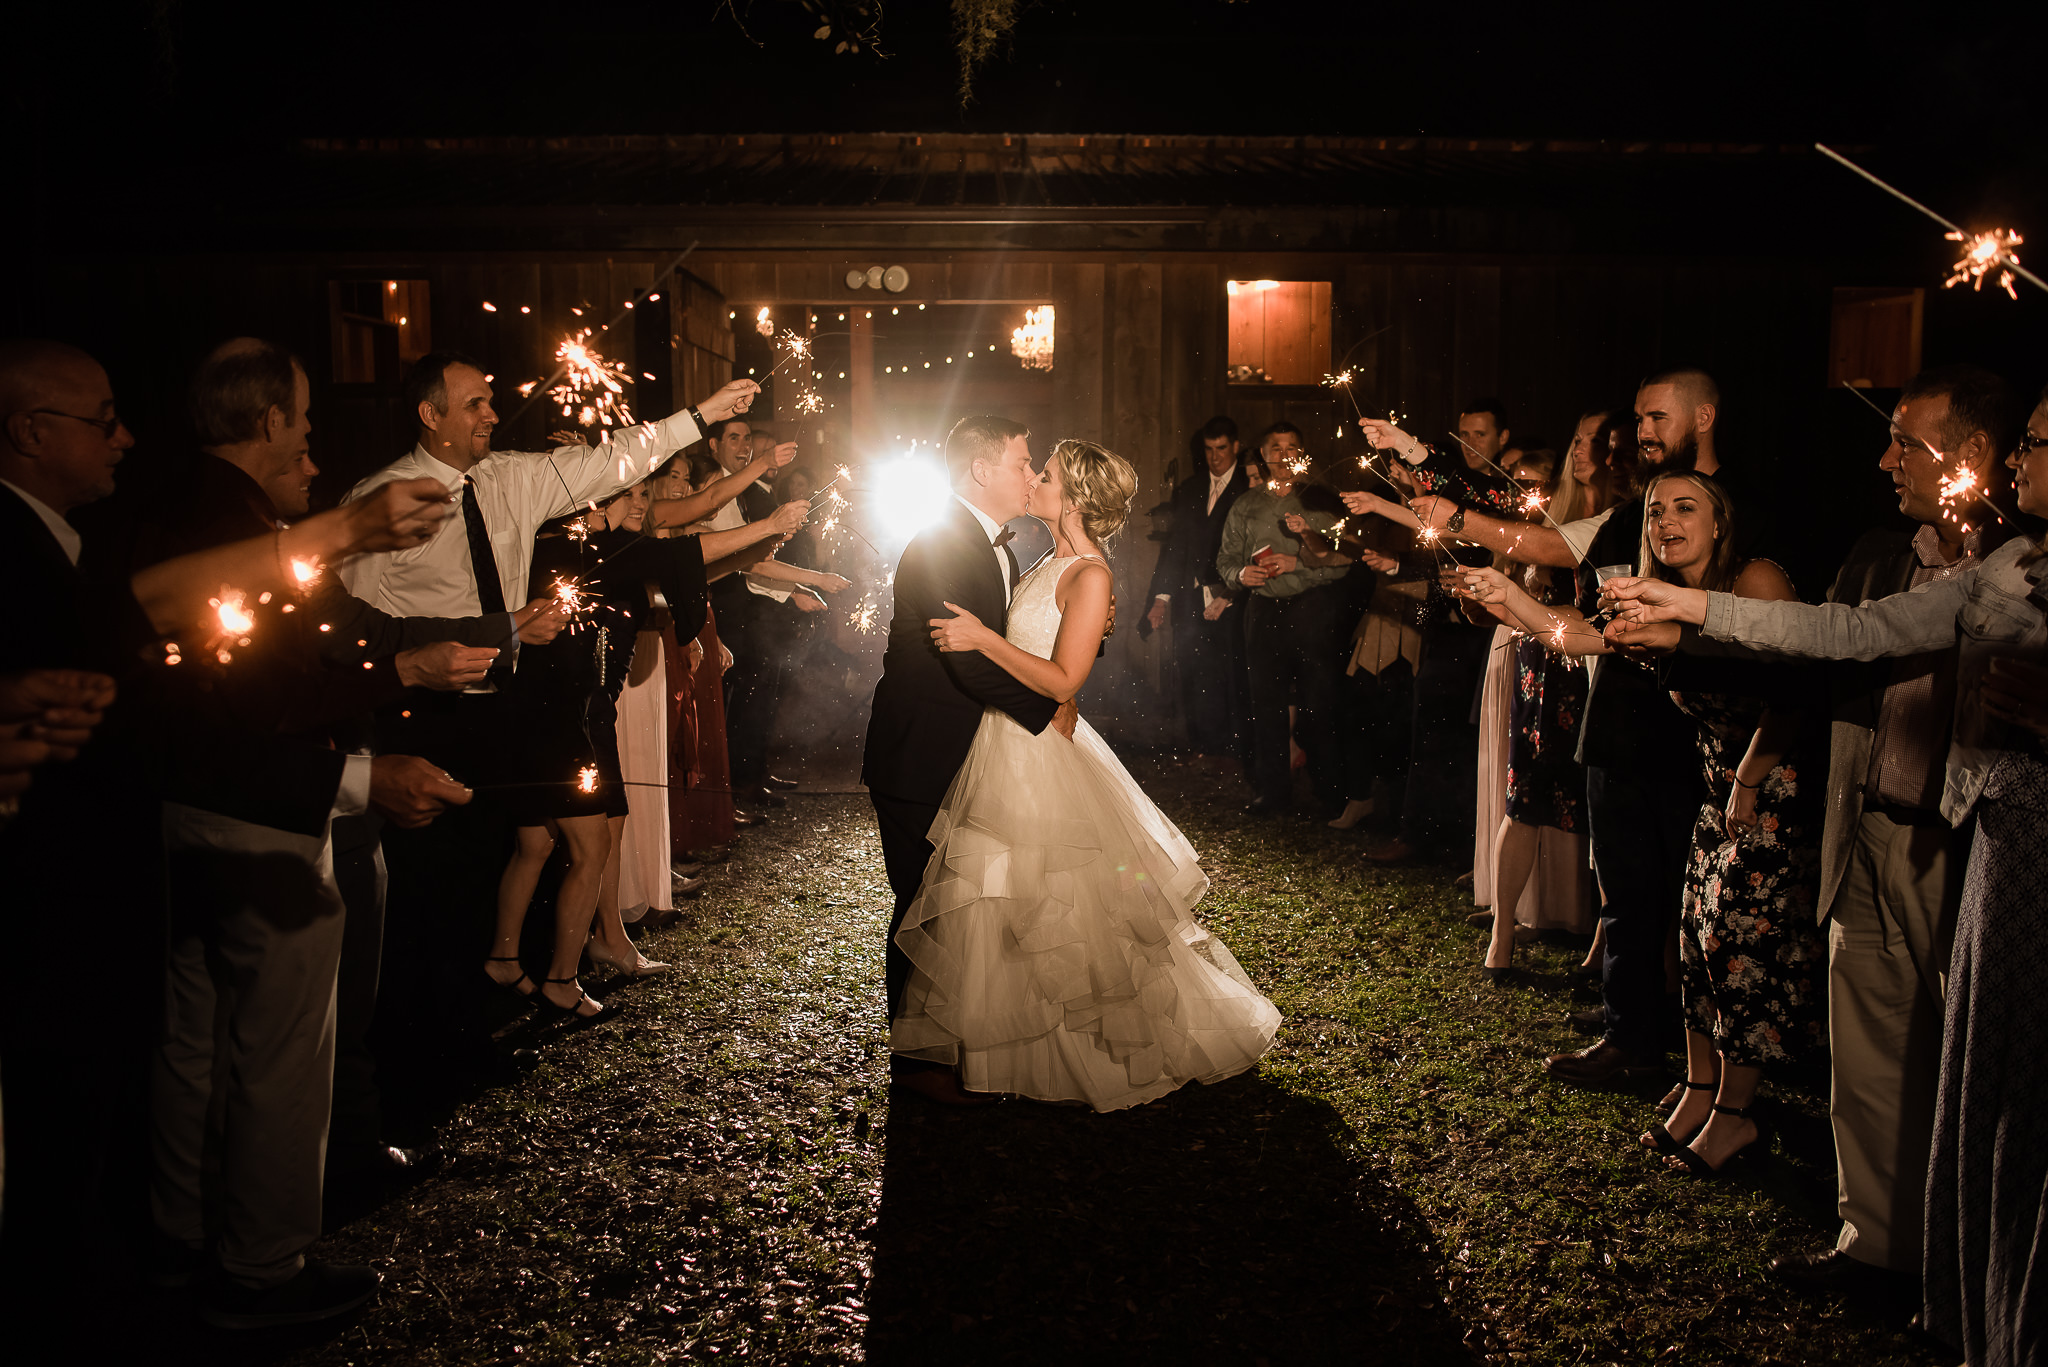 TAMPA_WEDDING_PHOTOGRAPHER_DRMZ_SPARROW_BARN_51.jpg